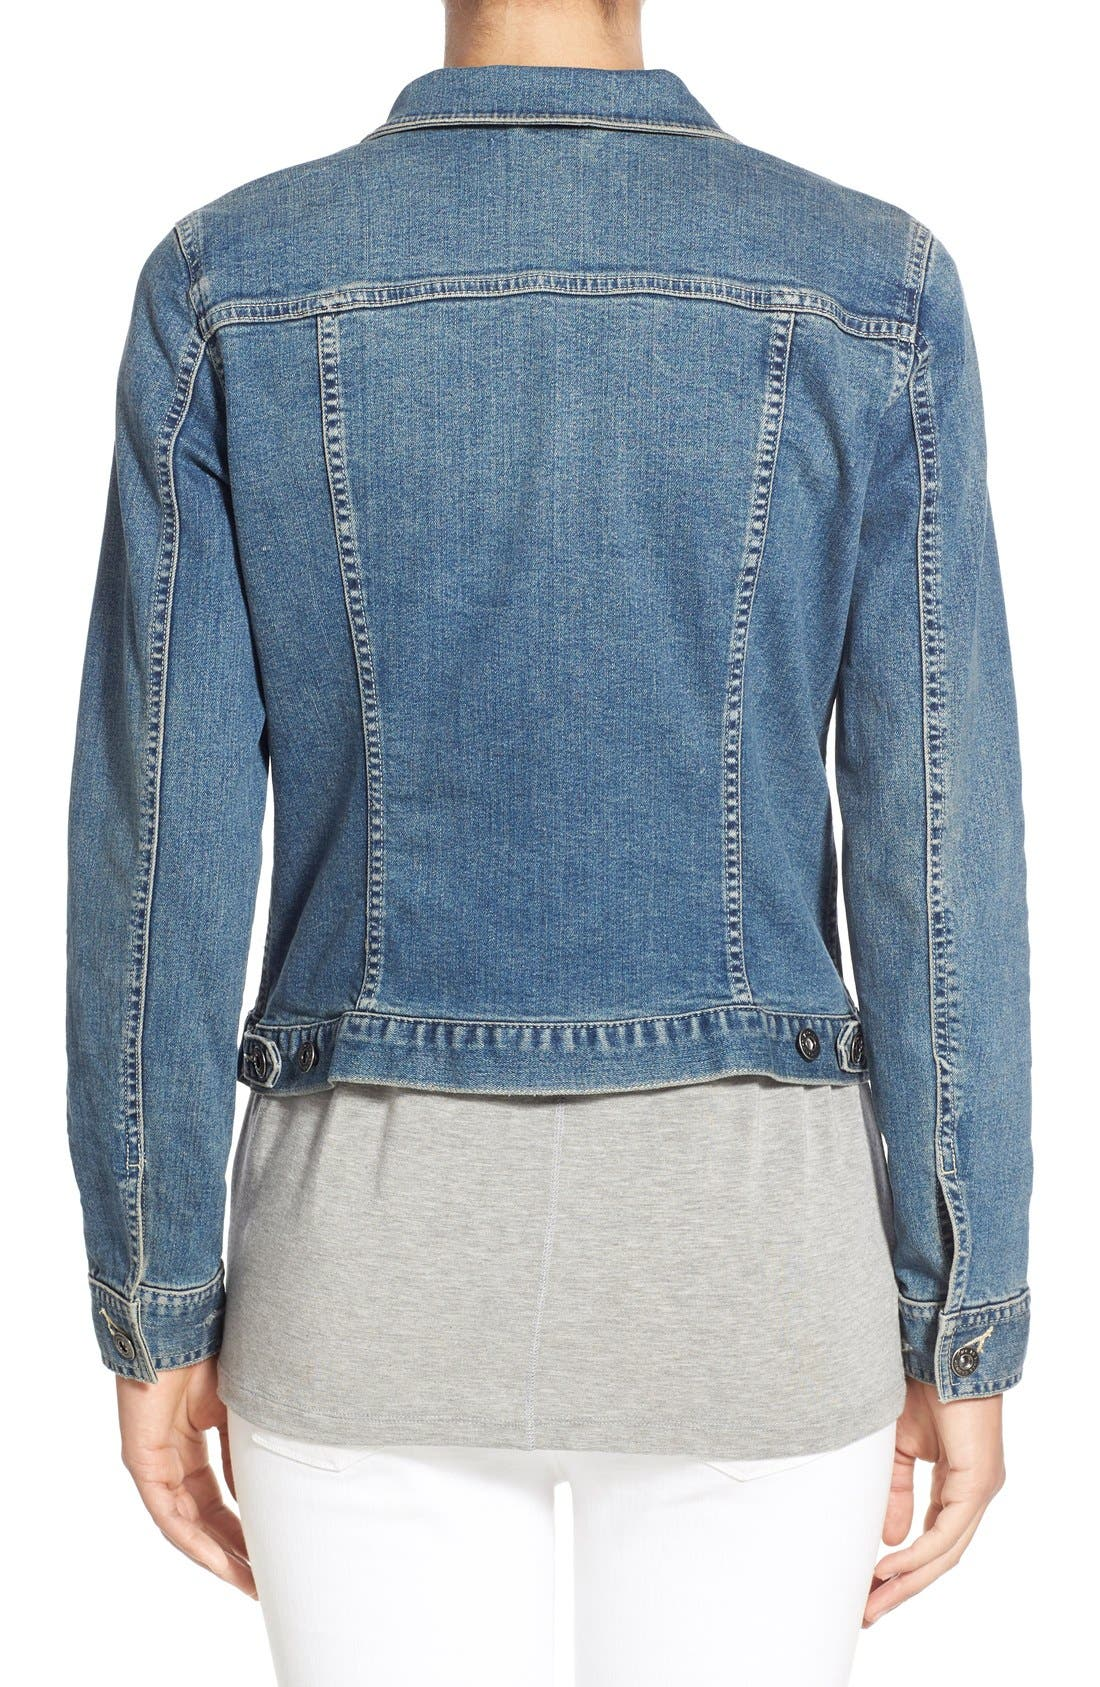 VINCE CAMUTO, Two by Vince Camuto Jean Jacket, Alternate thumbnail 11, color, AUTHENTIC